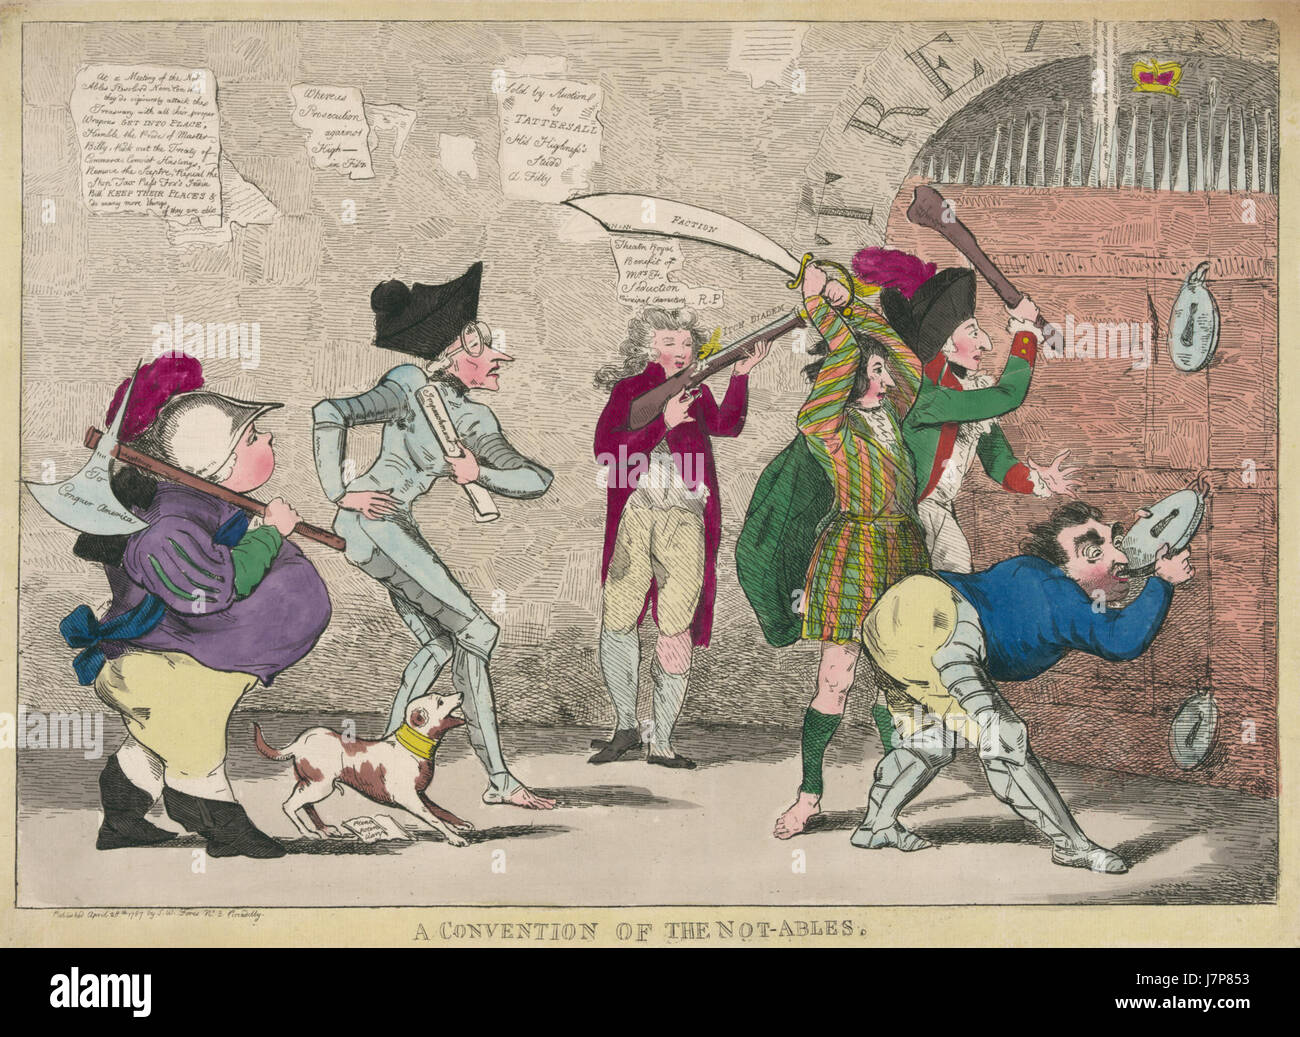 Convention of the Not ables, 1787 - Stock Image